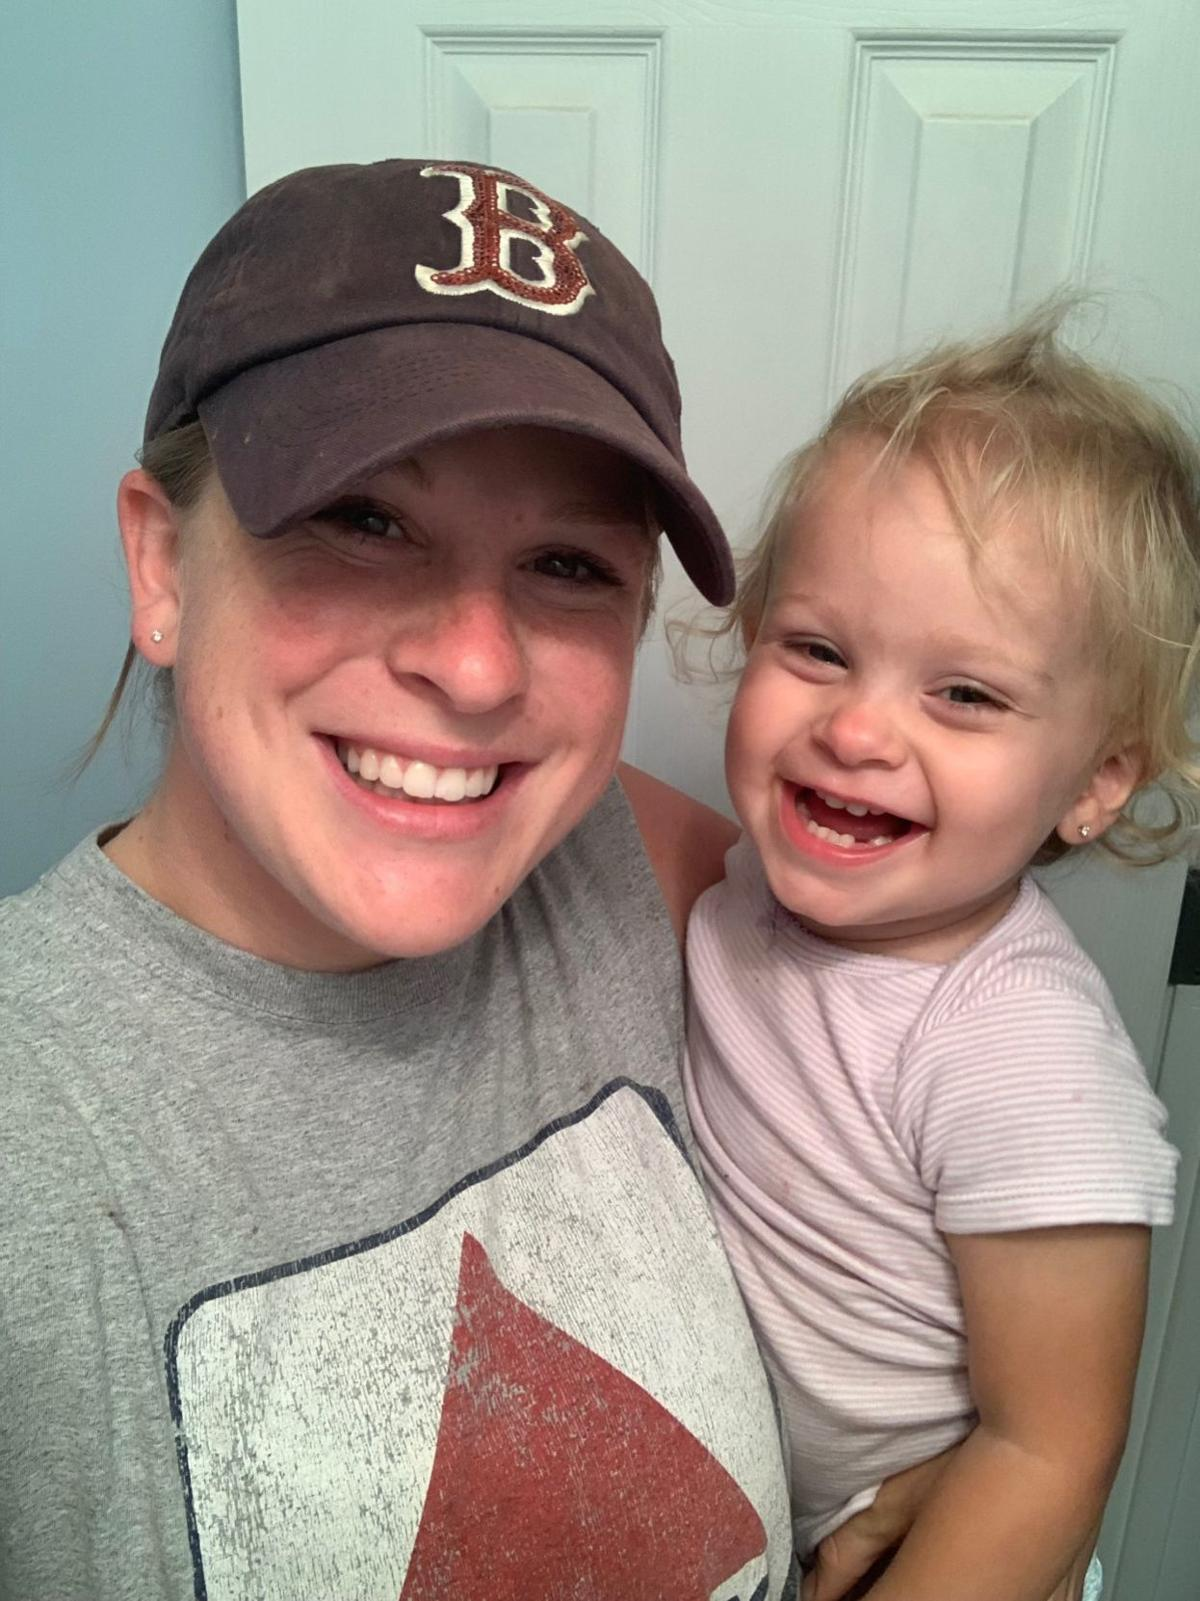 Slain officer with her daughter2